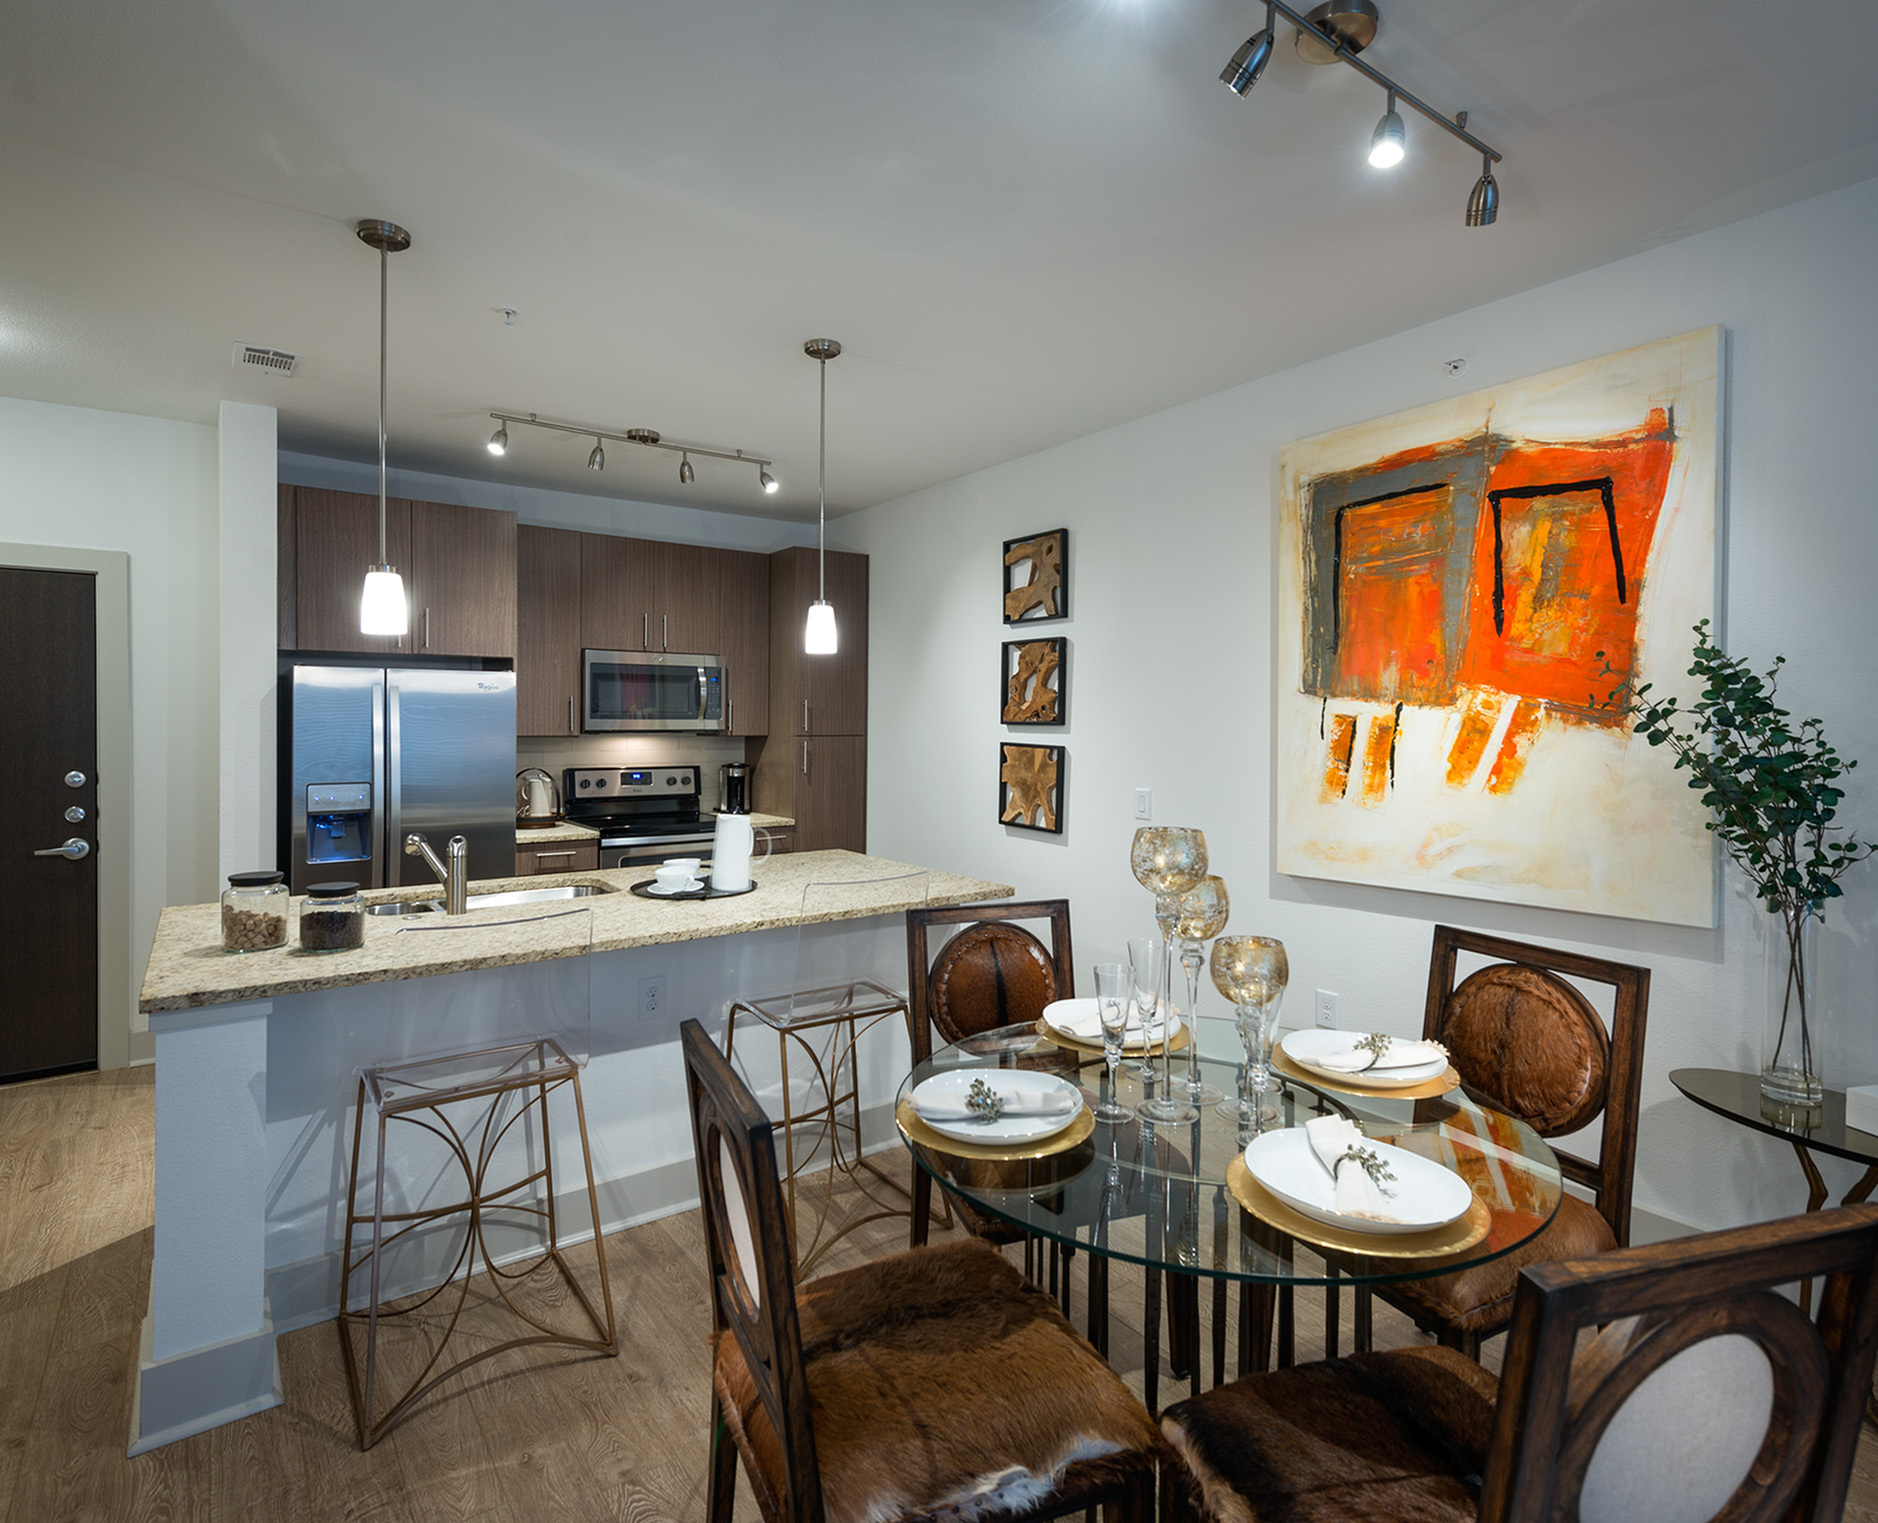 Image of Gourmet chef kitchens with stainless steel appliances for Hanover Midtown Park